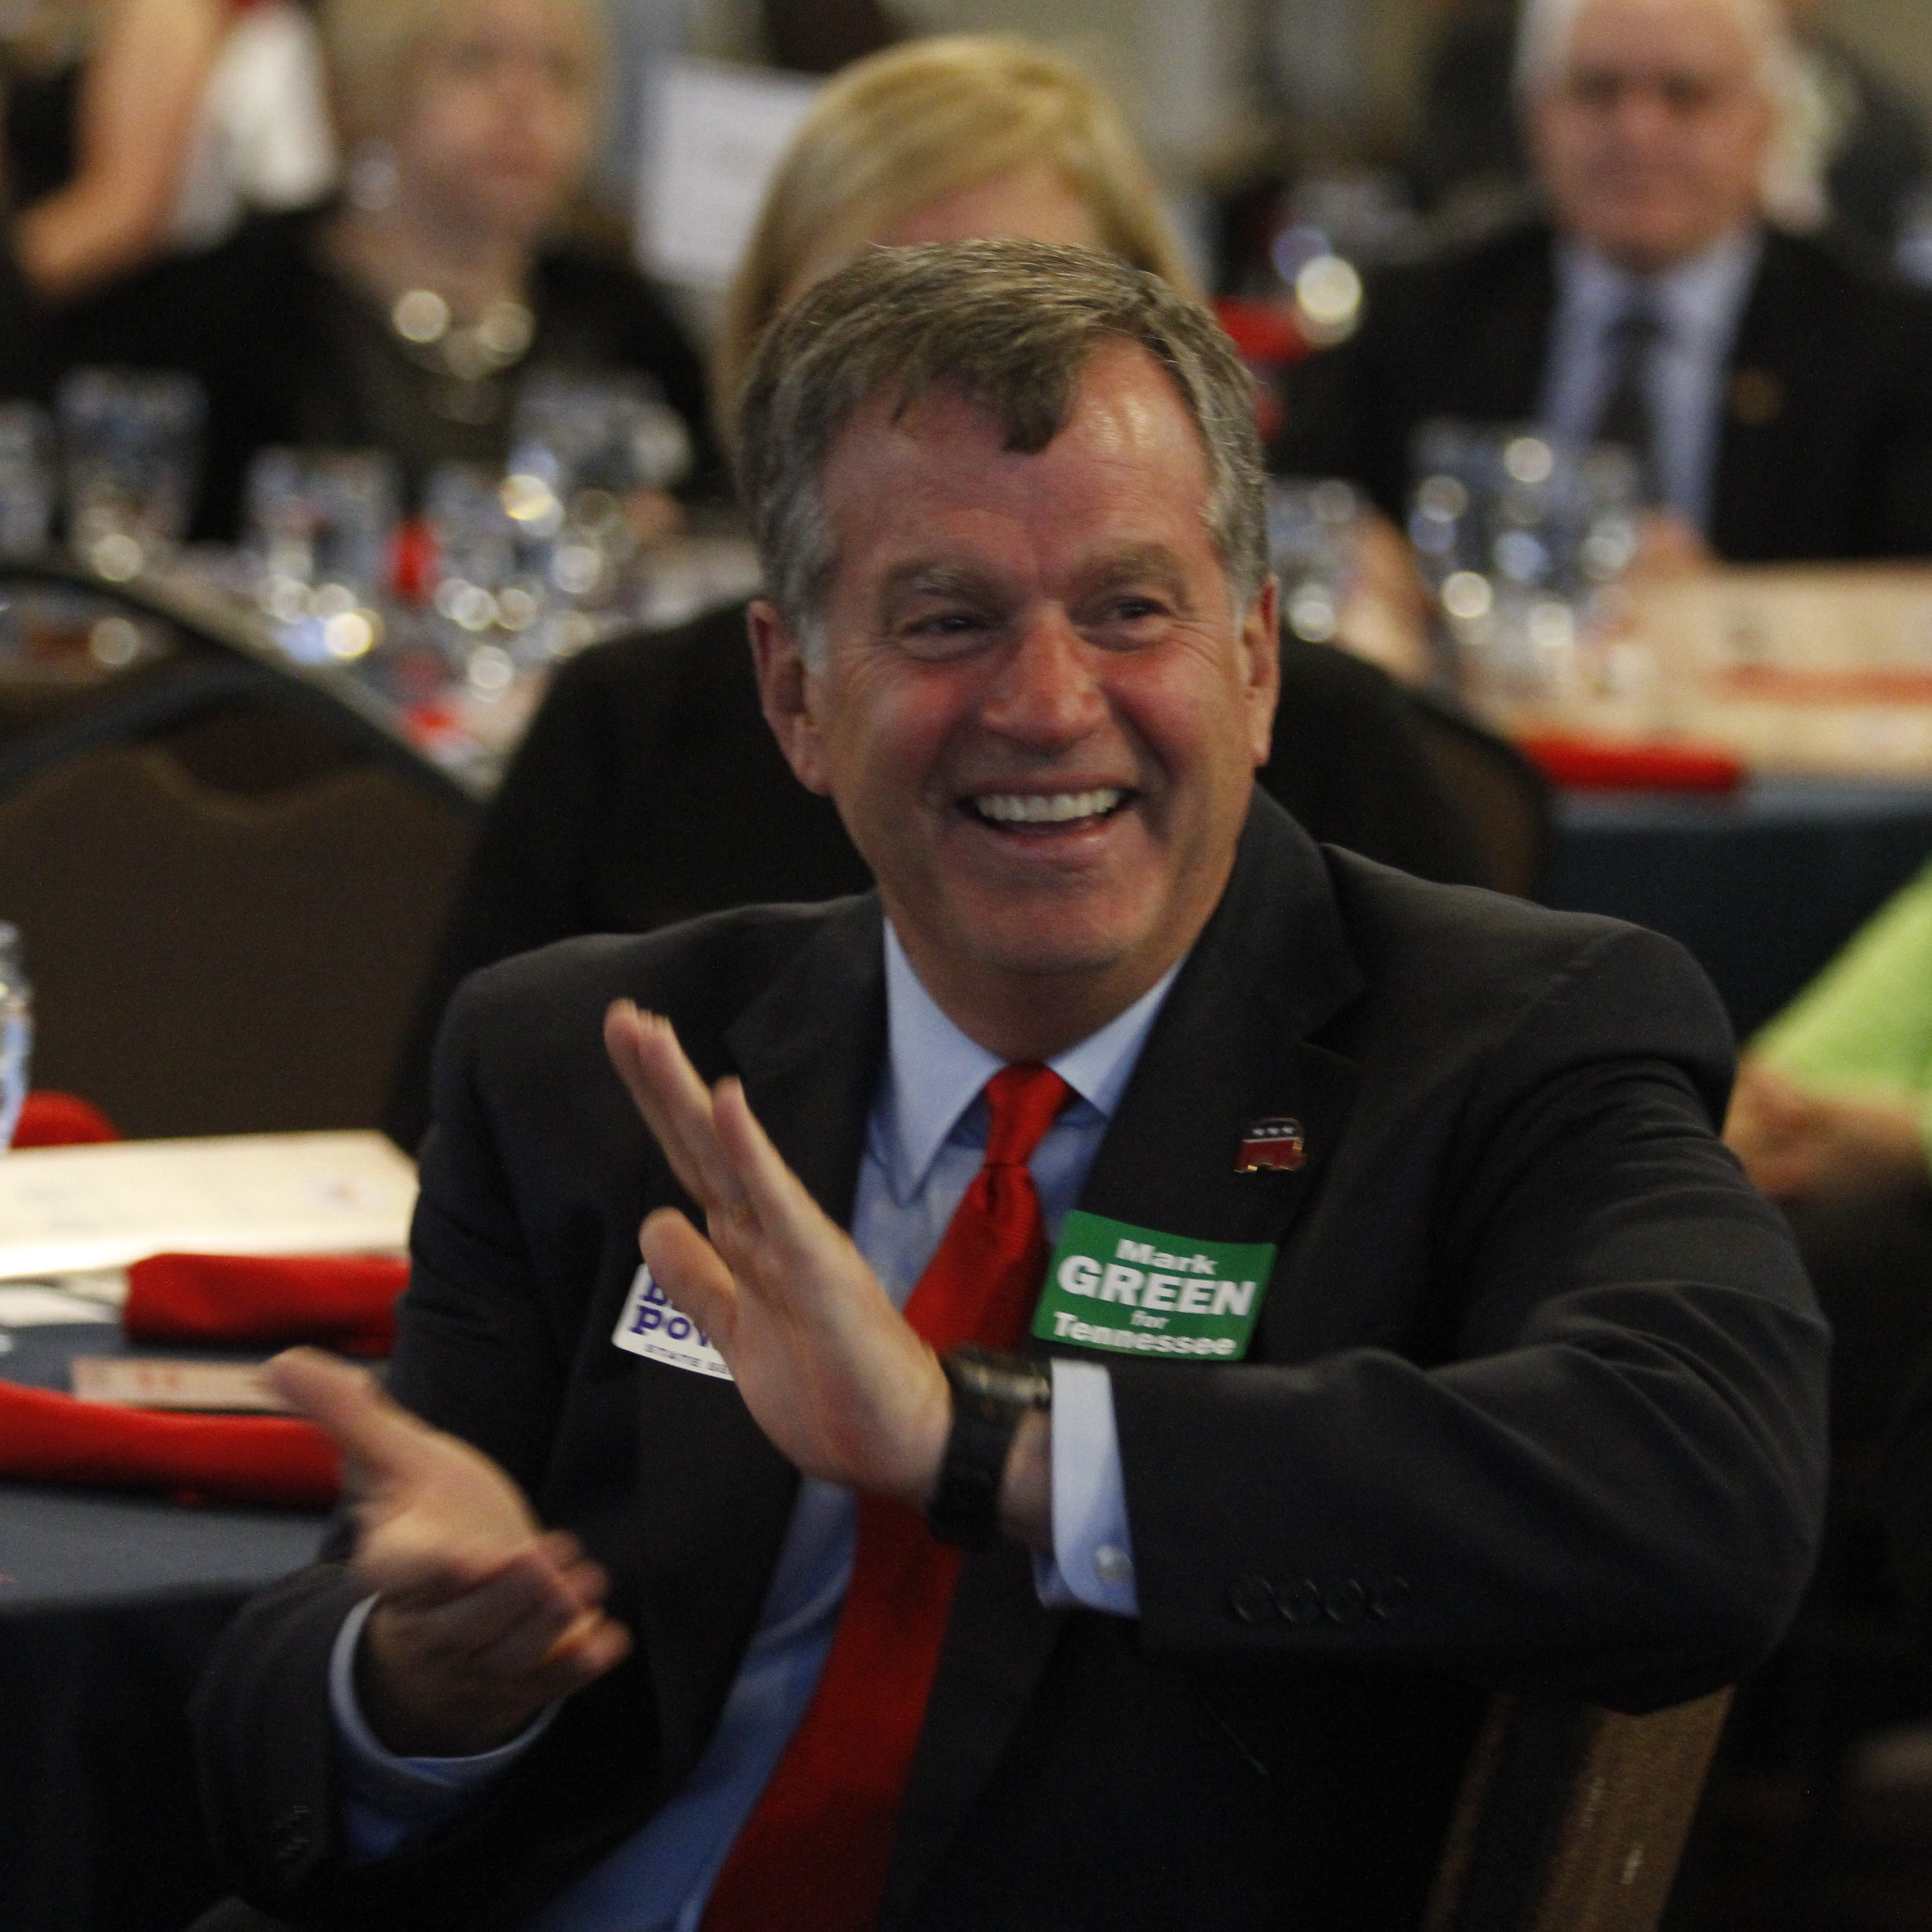 Republicans hold annual Lincoln Reagan Dinner in Clarksville